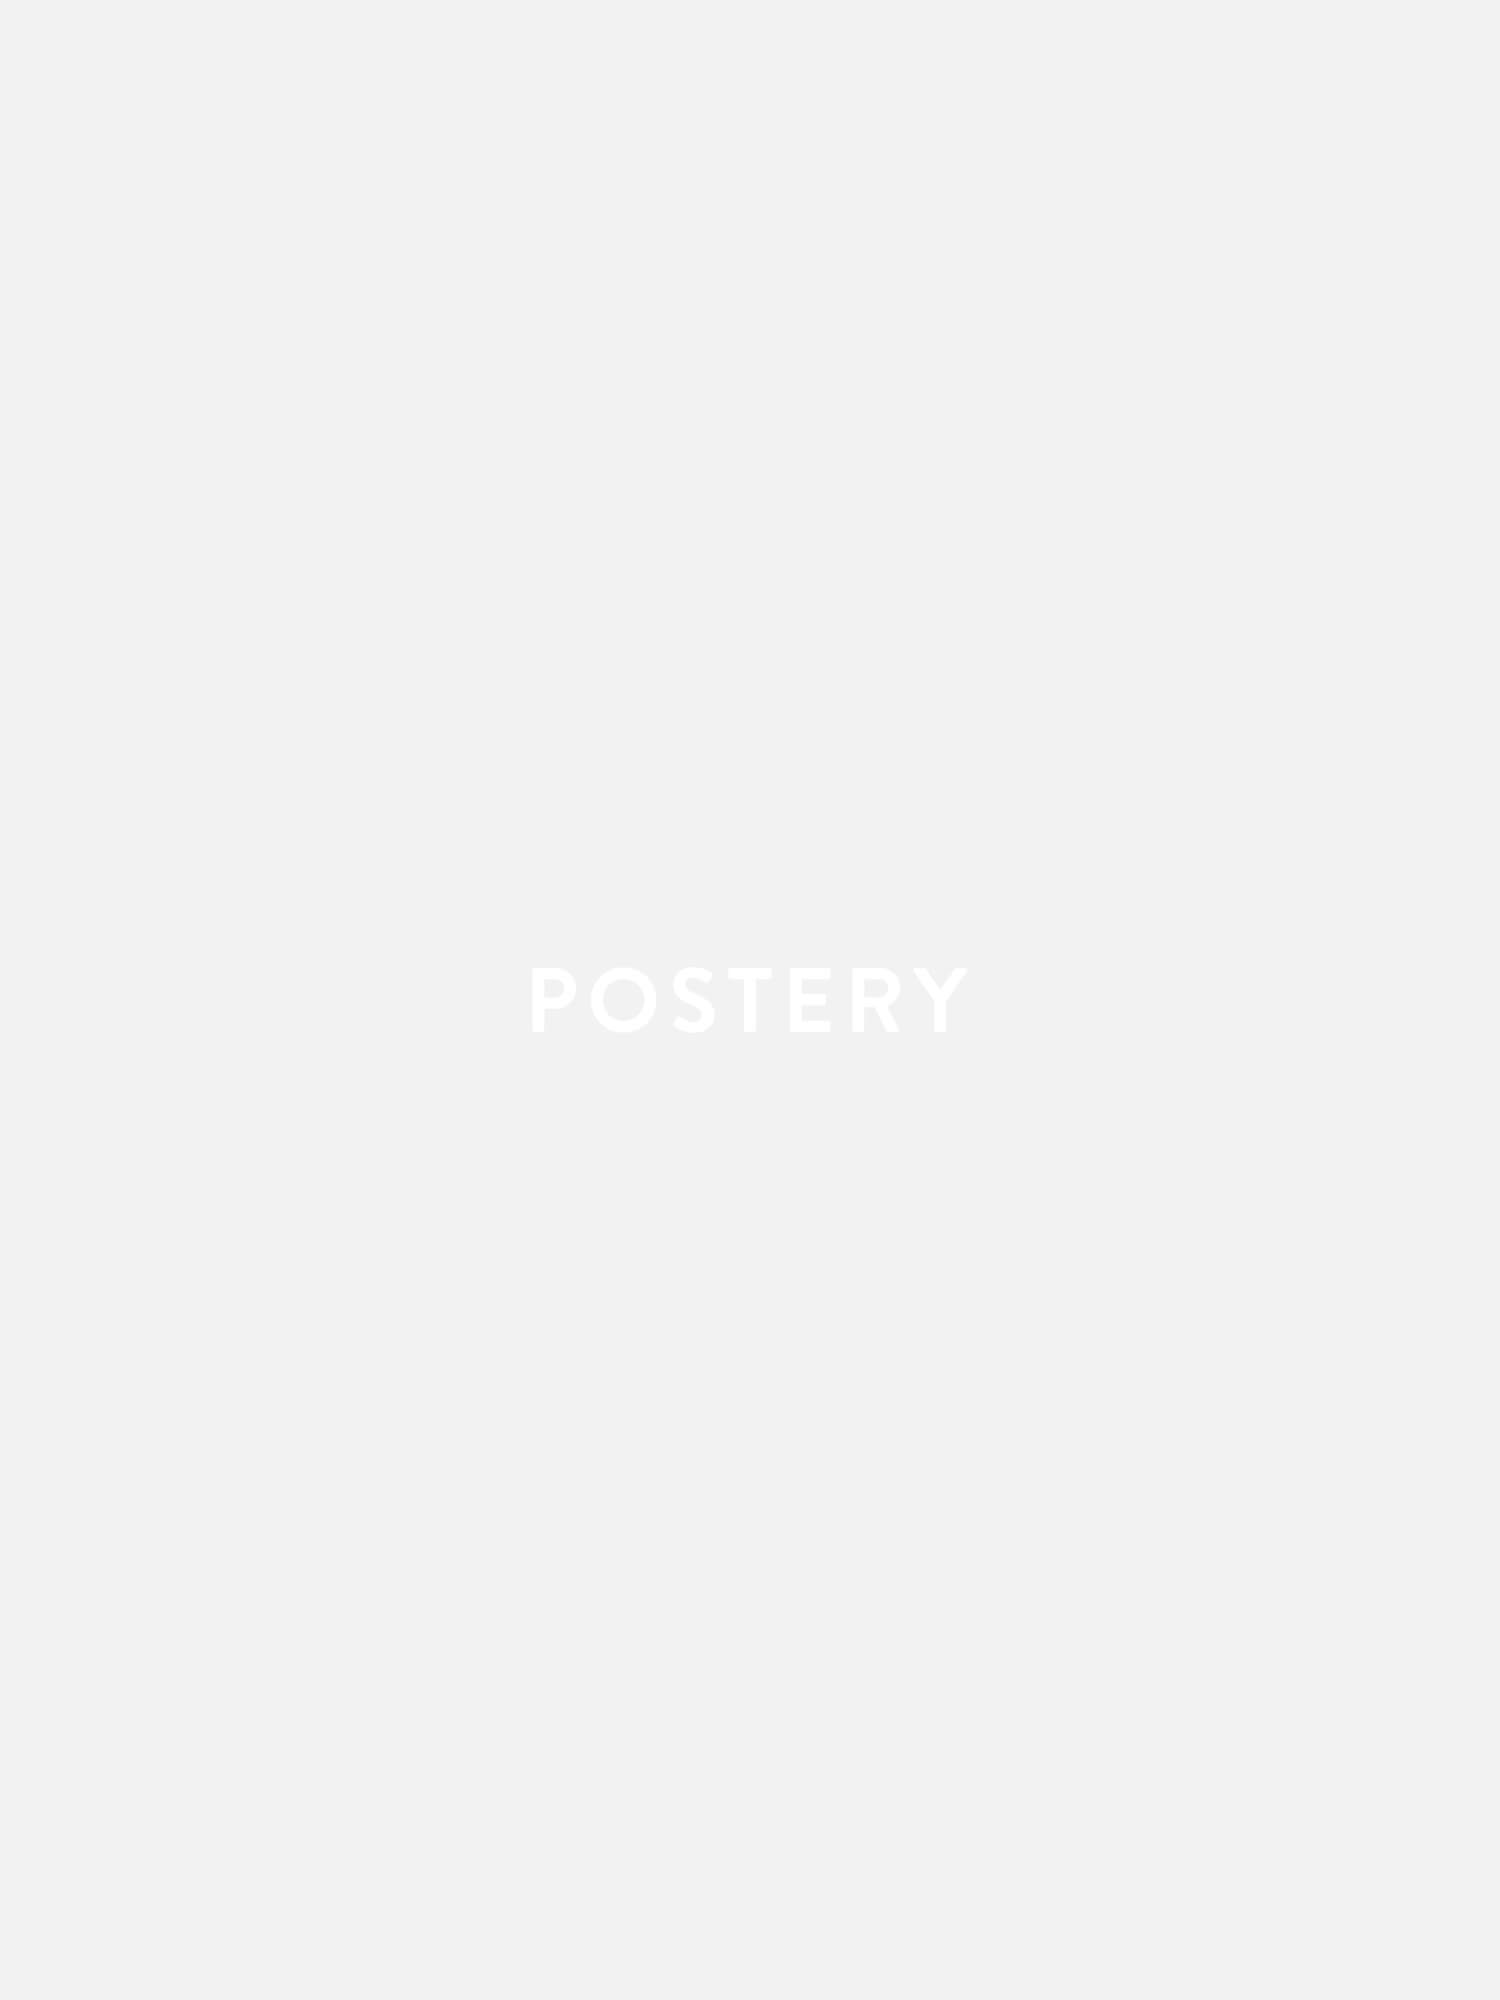 Kyoto Bamboo Grove Poster